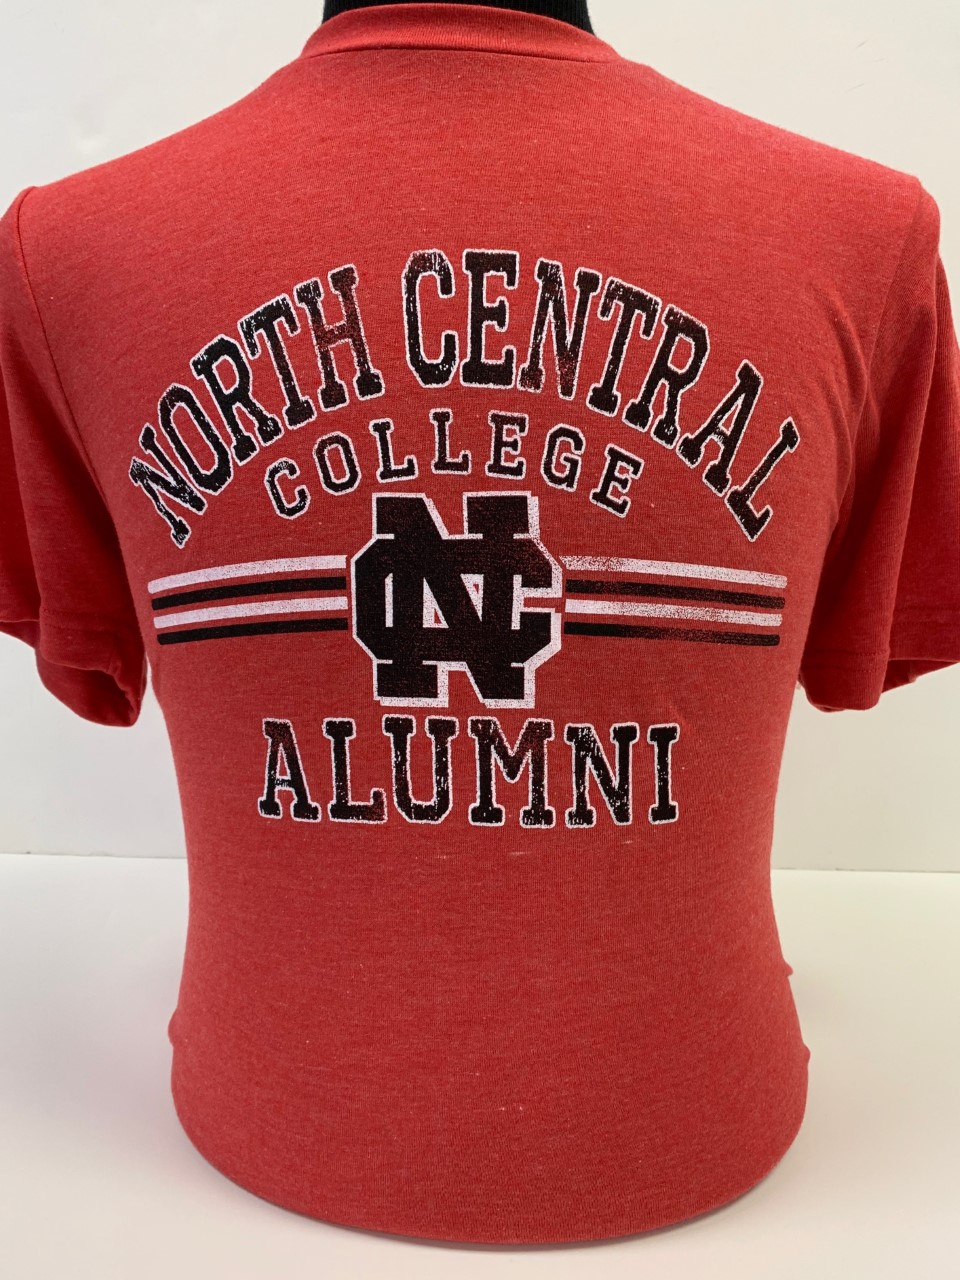 Image for the Alumni Tri-Blend Short Sleeve Tee product